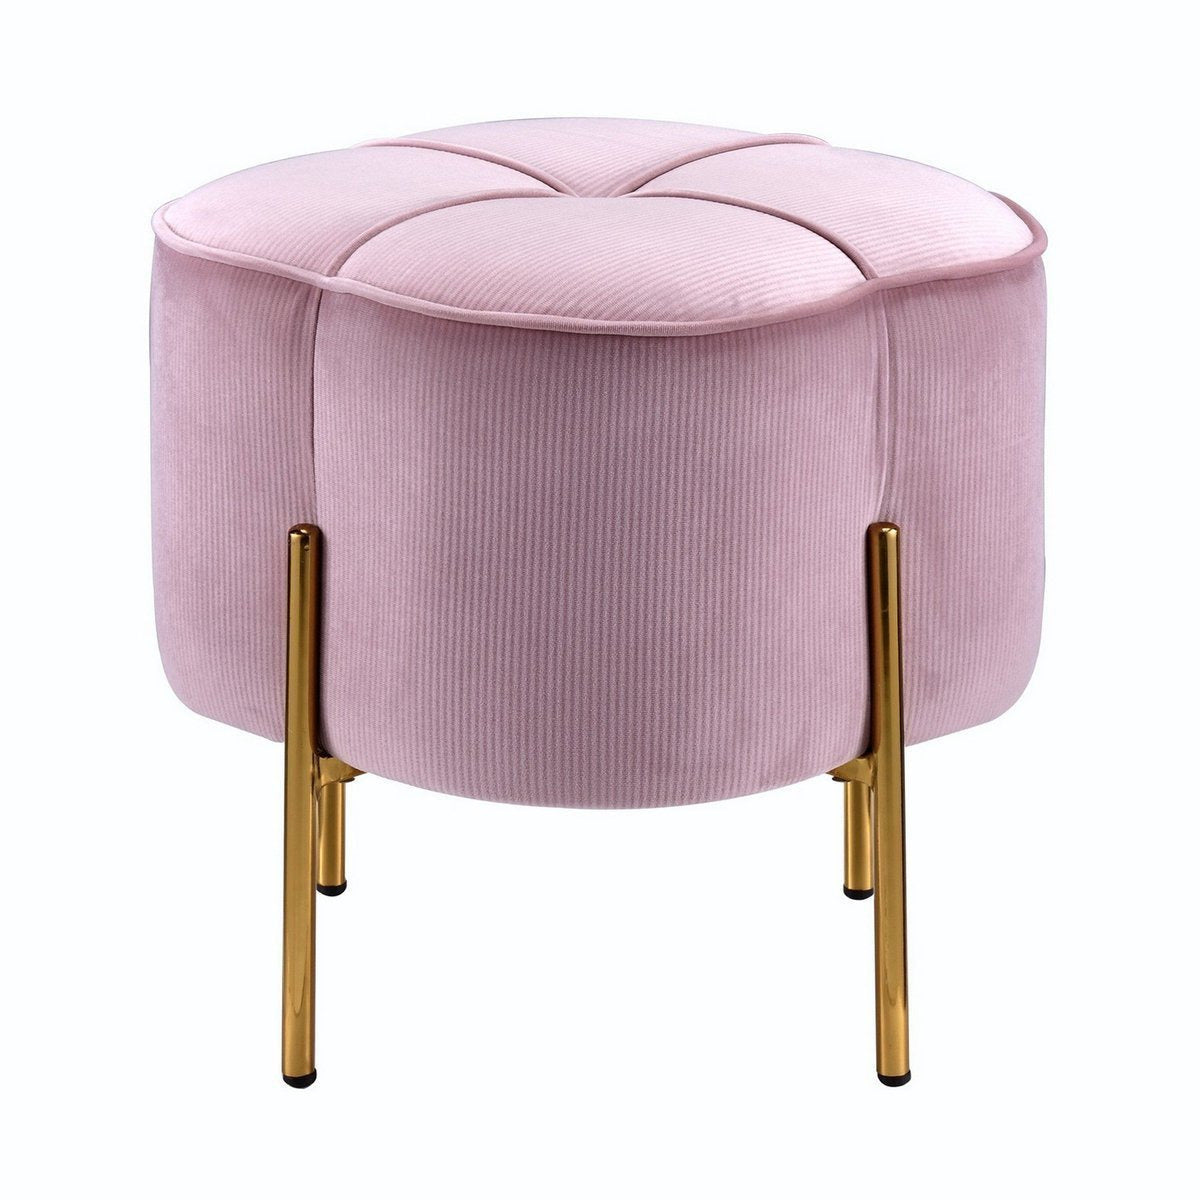 Ottomans - Fabric Upholstered Ottoman With Sleek Straight Legs, Pink And Gold